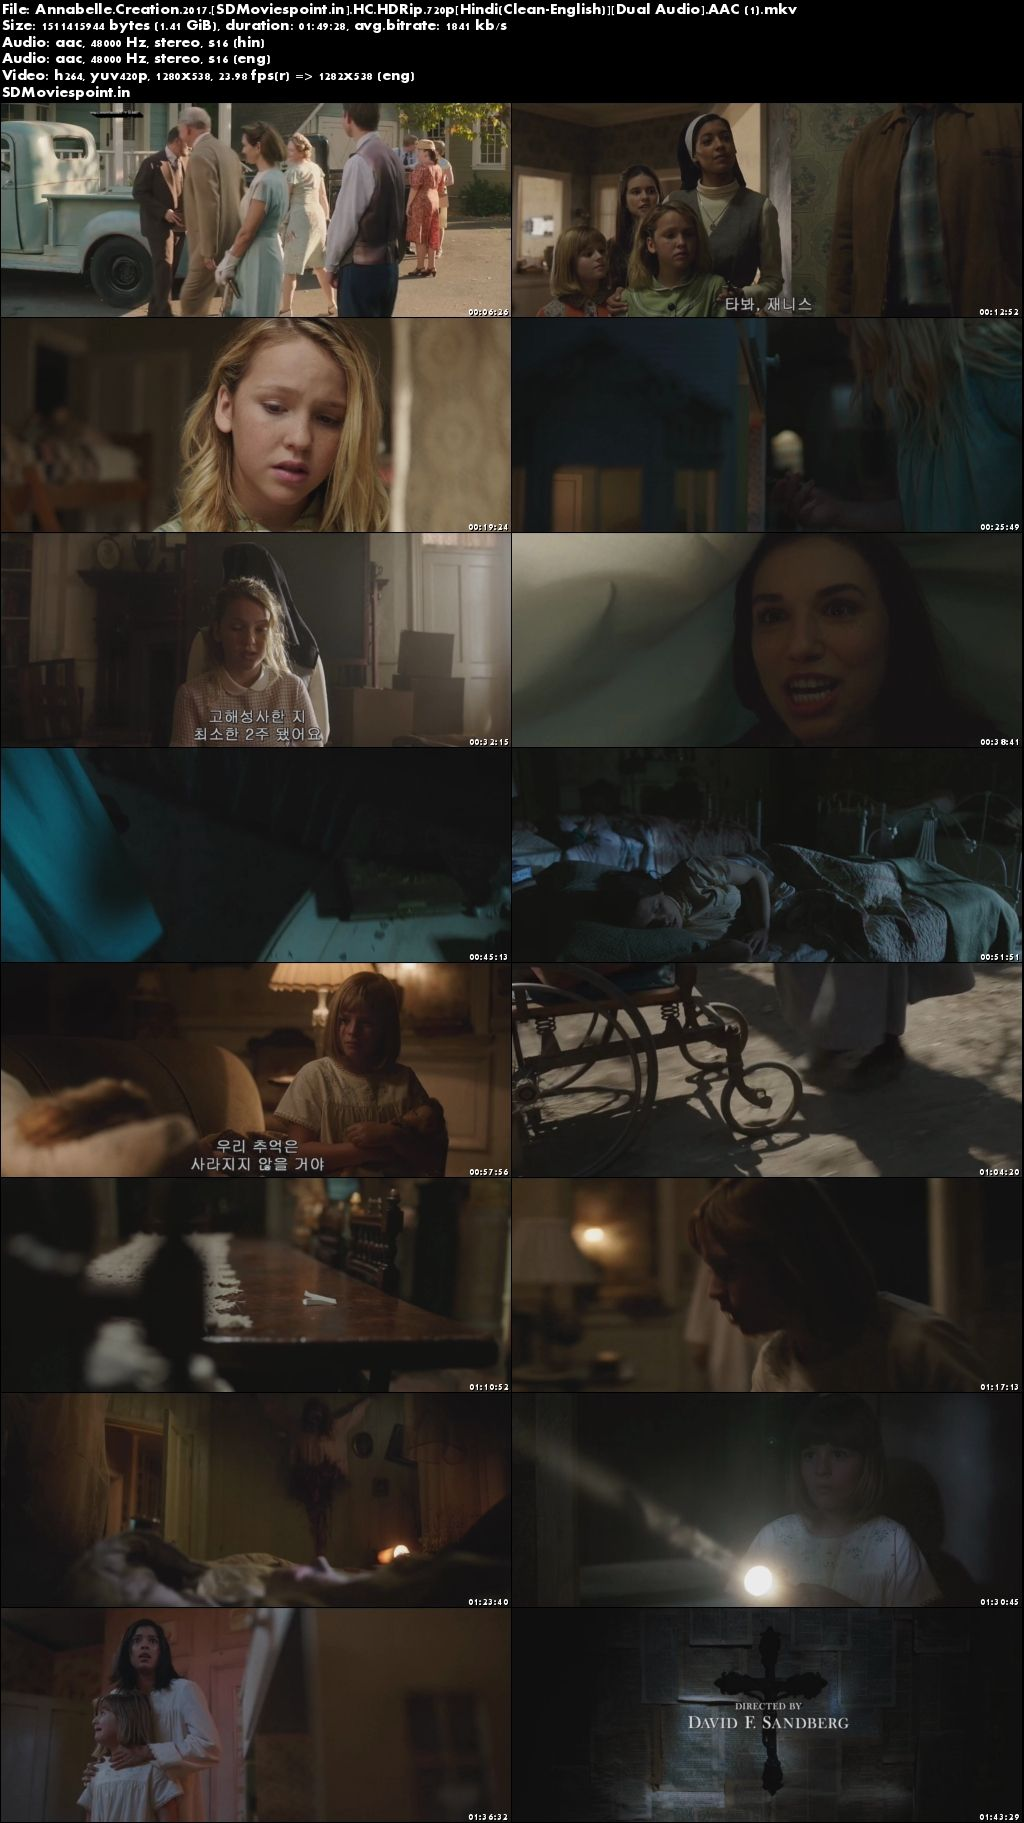 Screen Shots Annabelle: Creation (2017) Full HD Movie Download in Hindi Dubbed